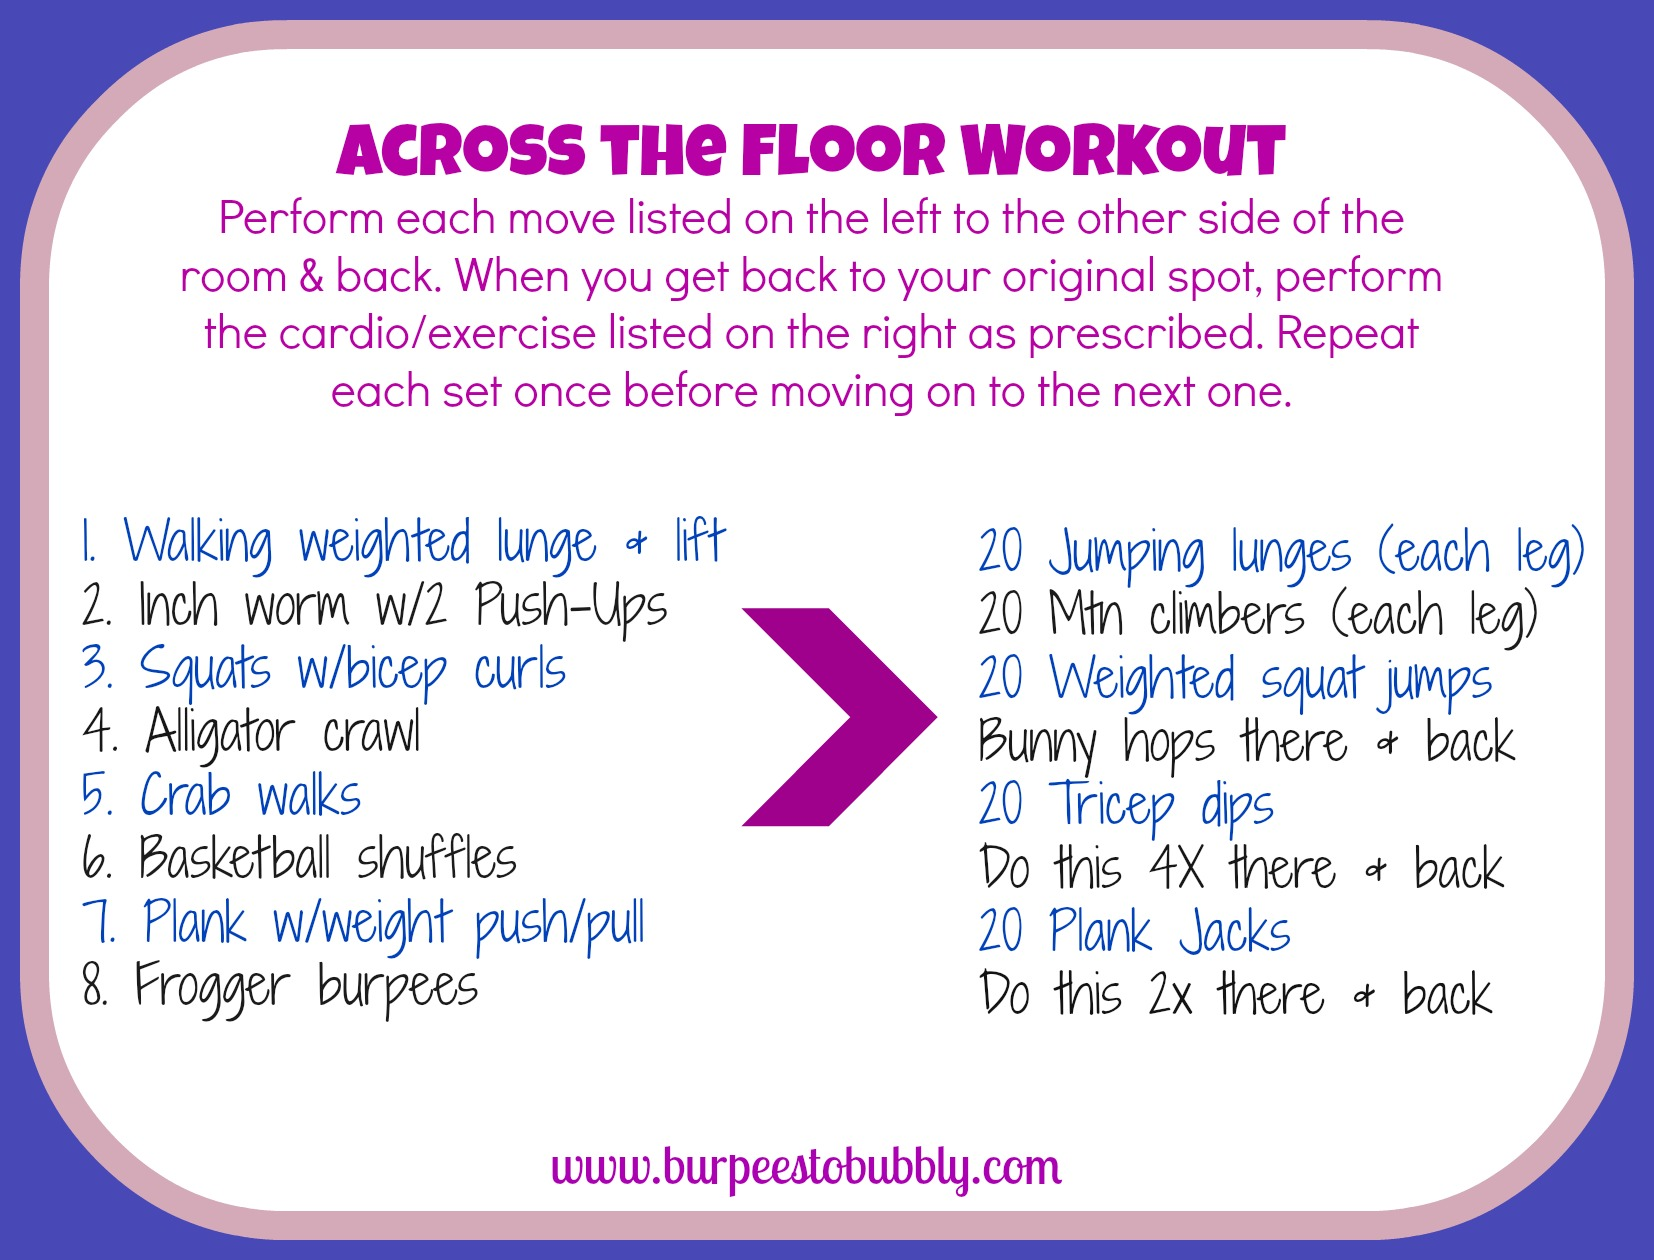 Wednesday Workout Across the Floor Workout  Burpees to